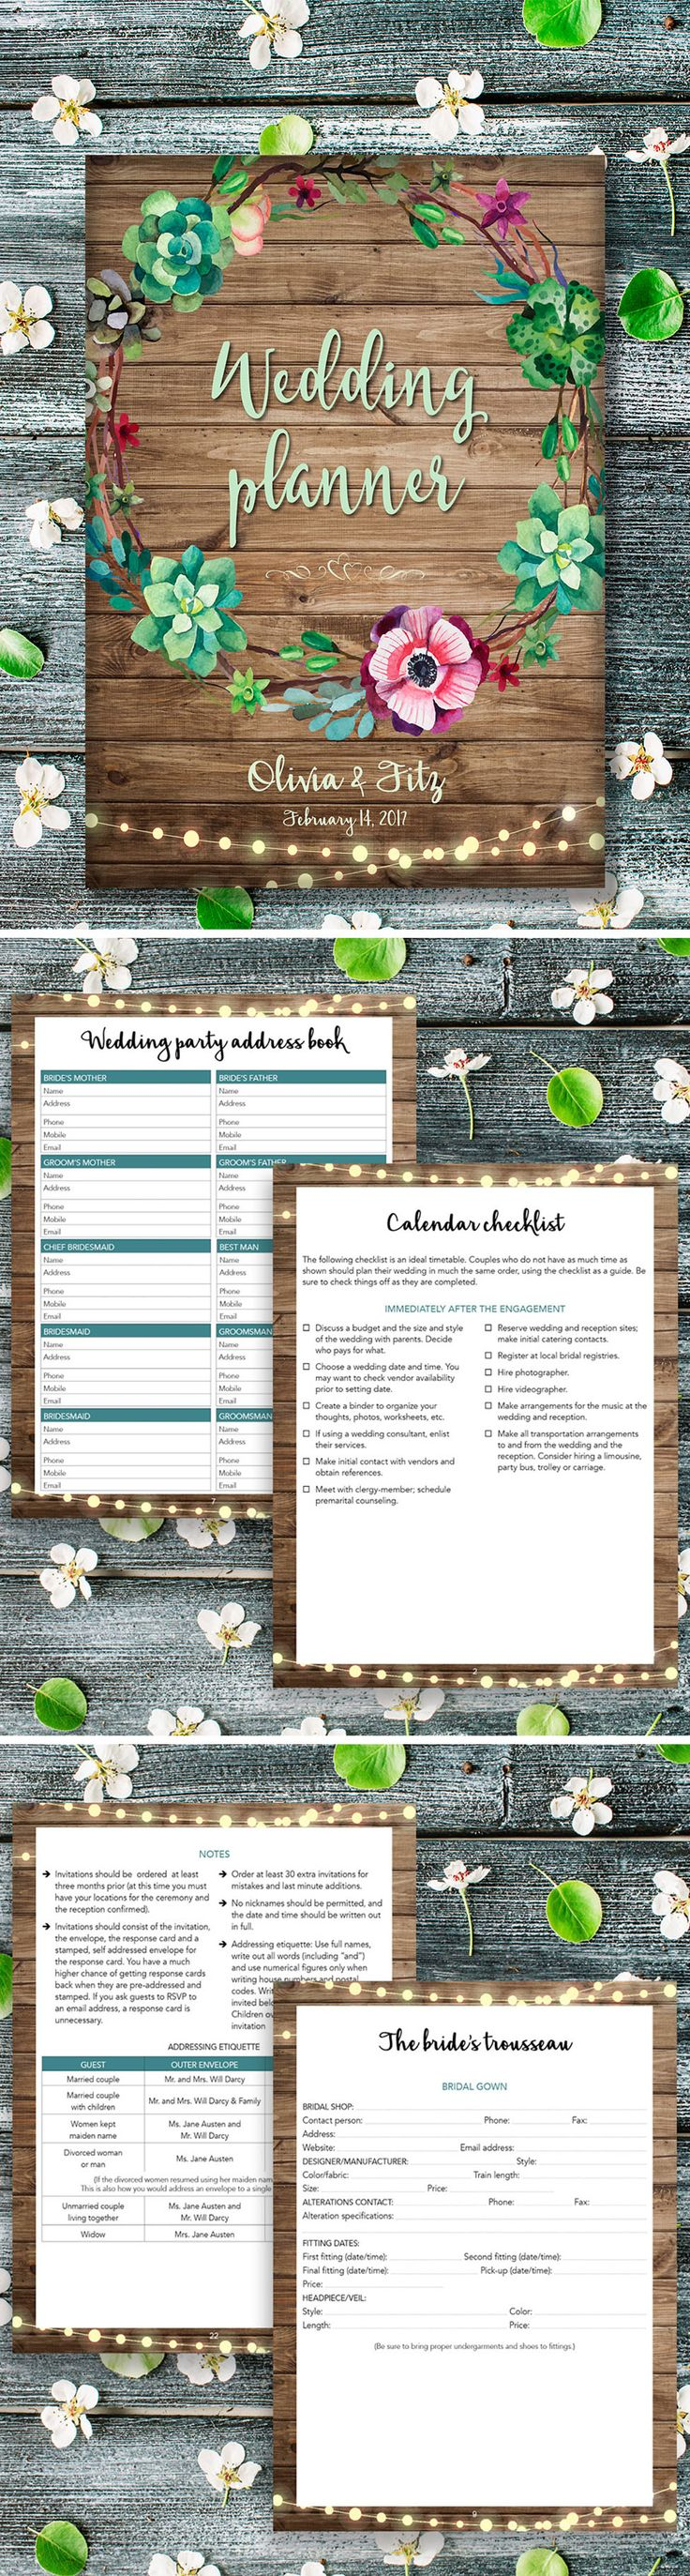 wedding planning checklist spreadsheet free%0A Printable wedding planner